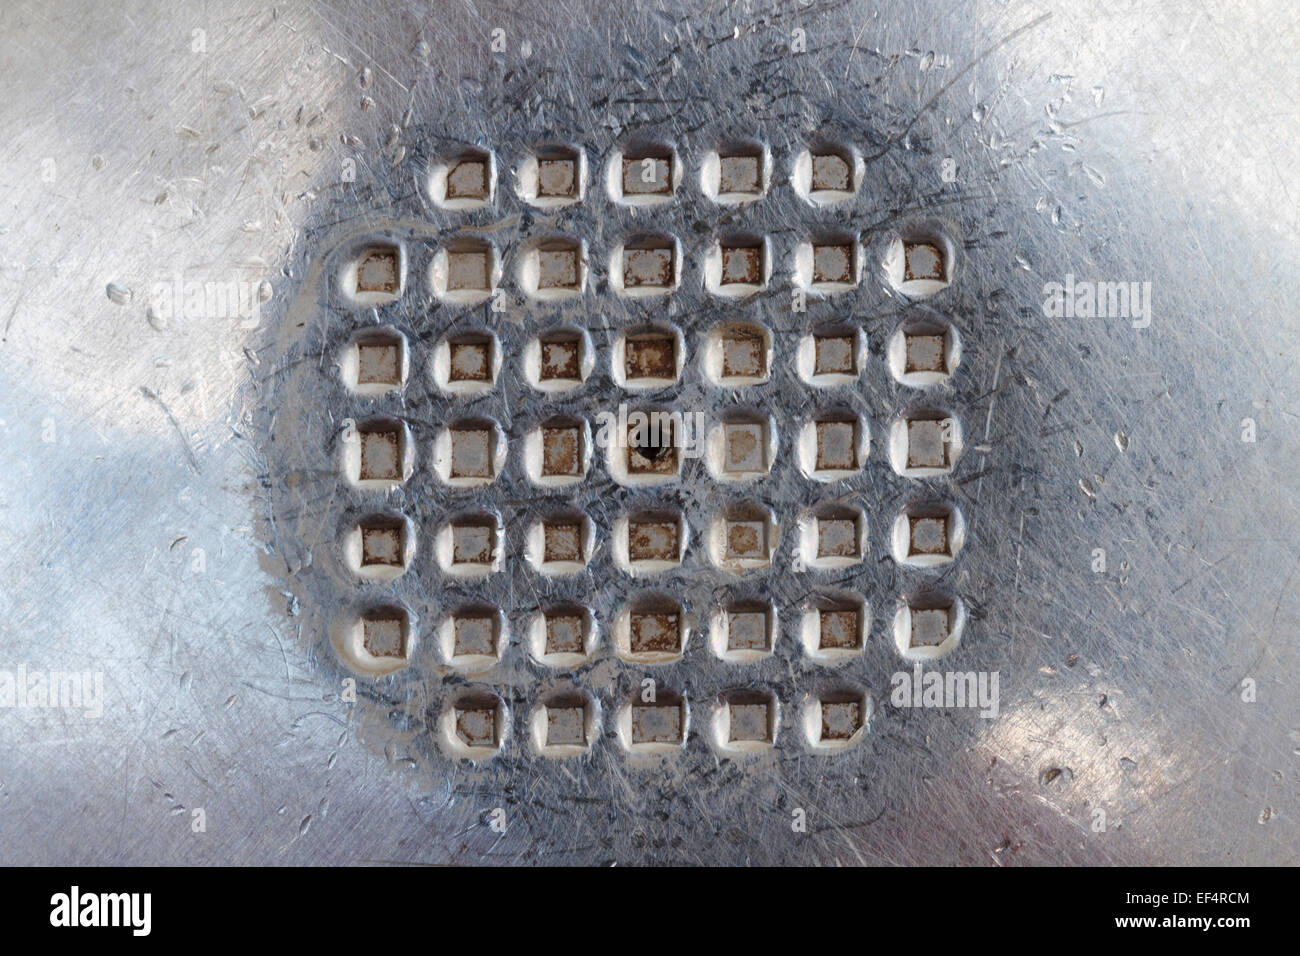 metal texture, abstract background - Stock Image